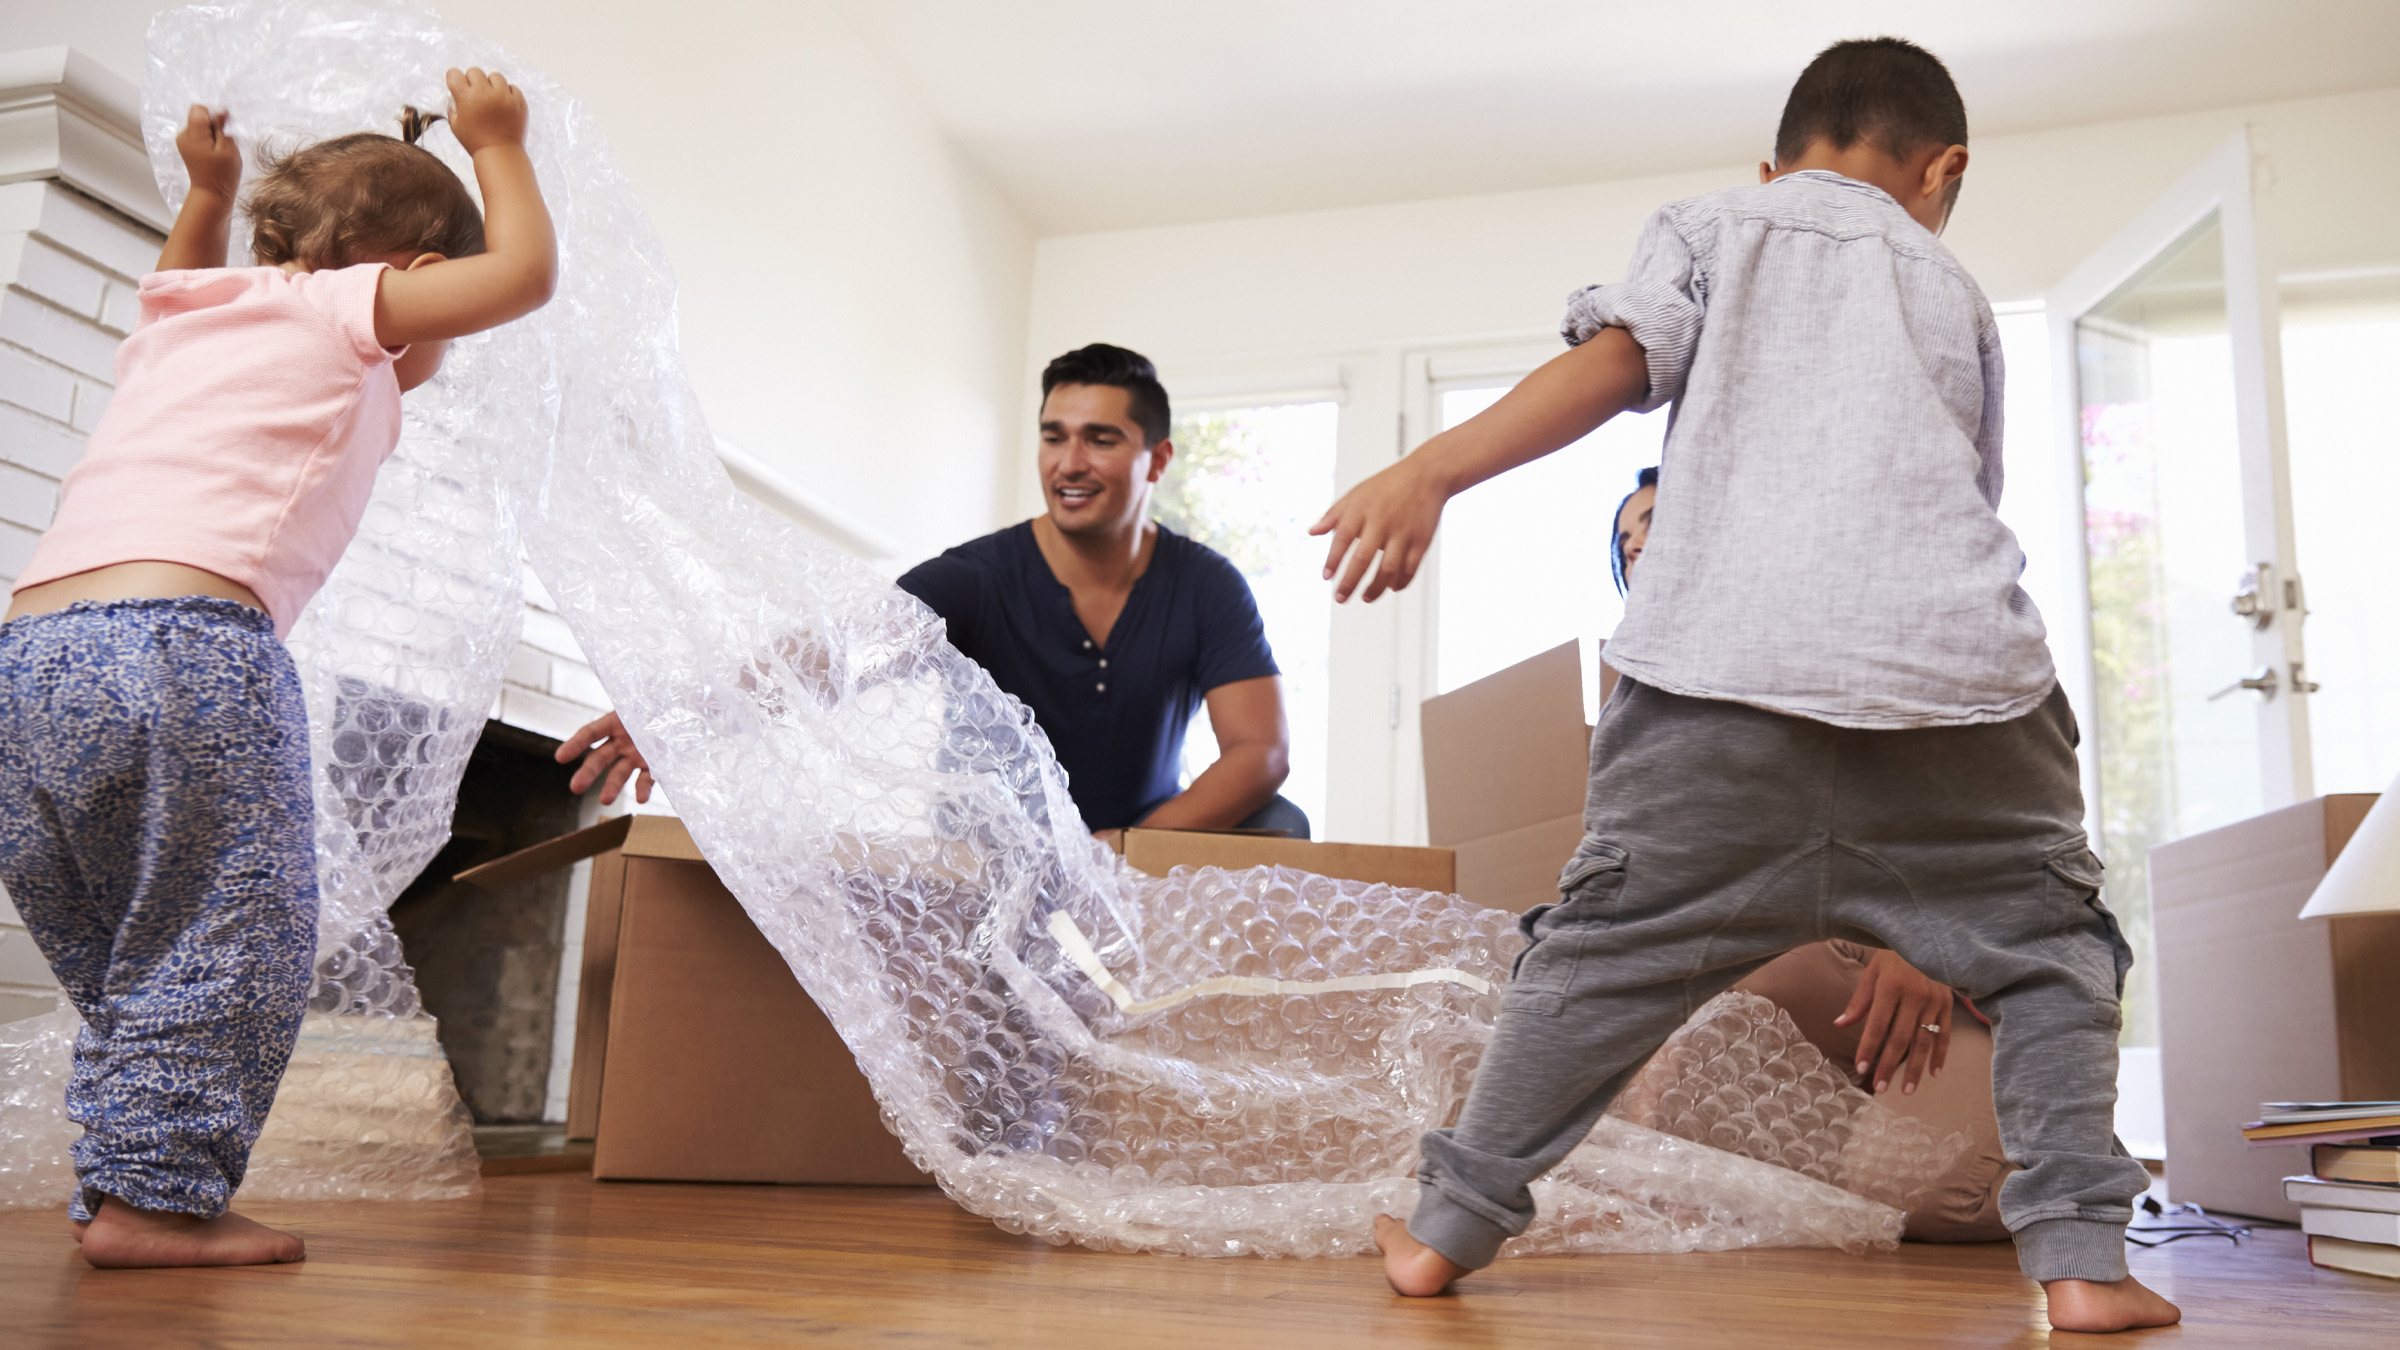 Kids playing with bubble wrap